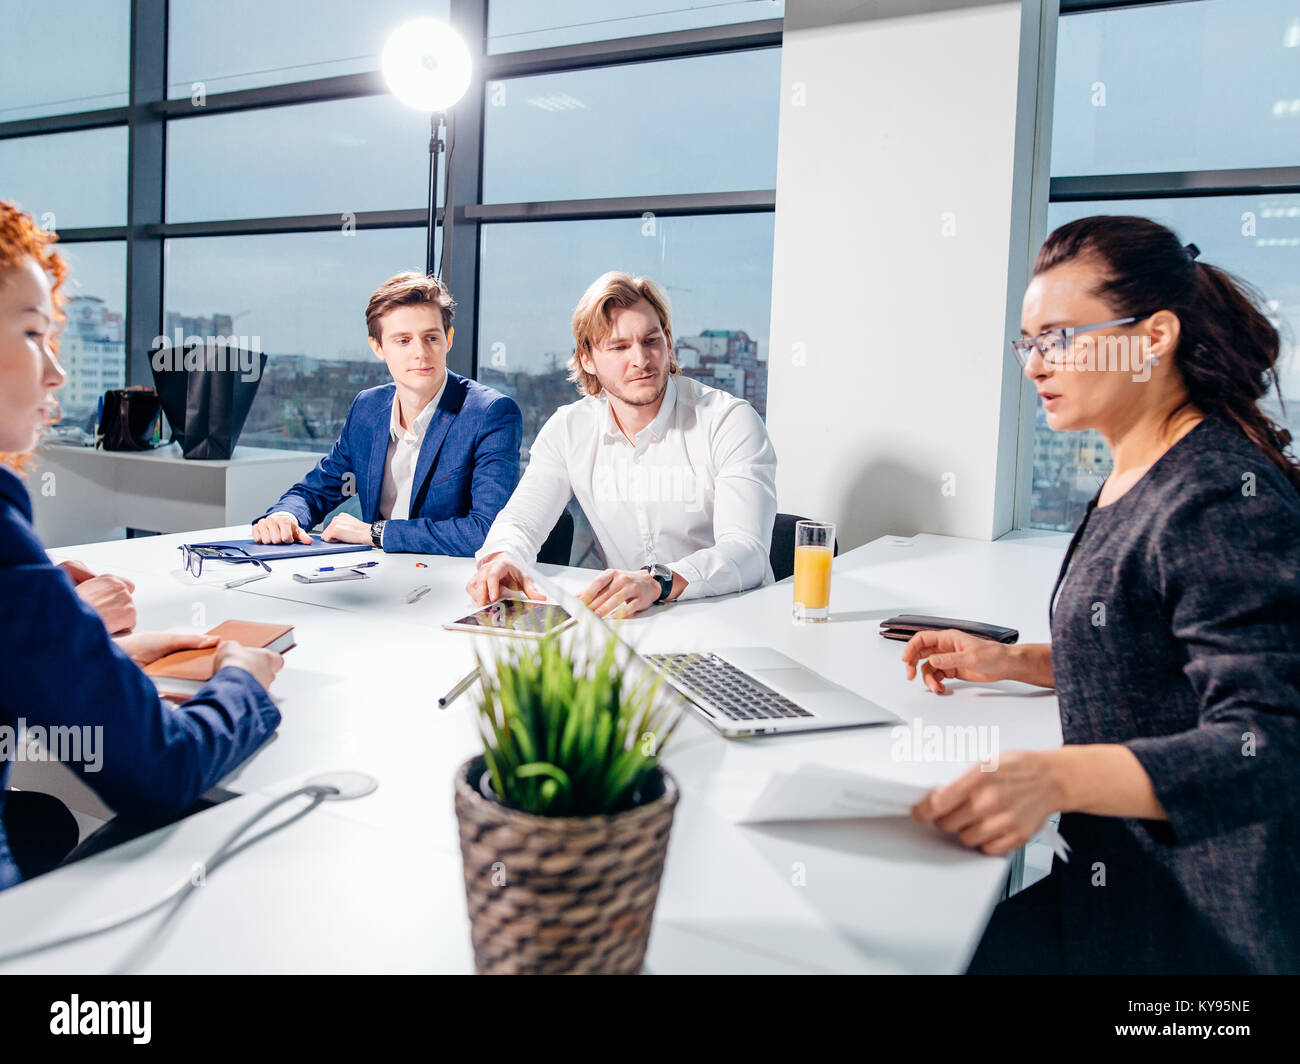 Manager Leads Brainstorming Meeting In Design Office - Stock Image